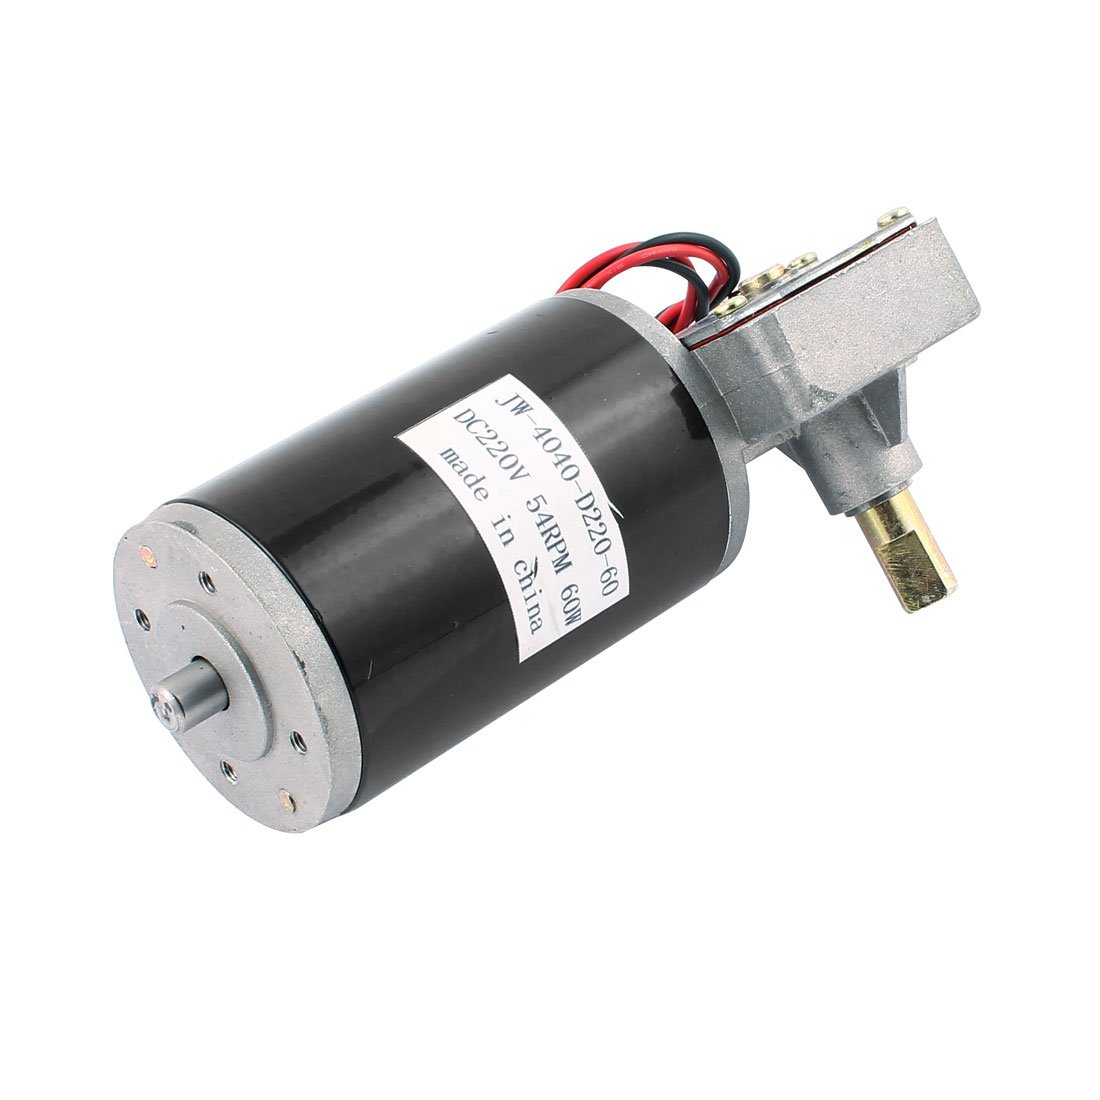 uxcell JW-4040-D220-60 DC 220V 54RPM 60W DC Geared Motor for Electronic Game Machine